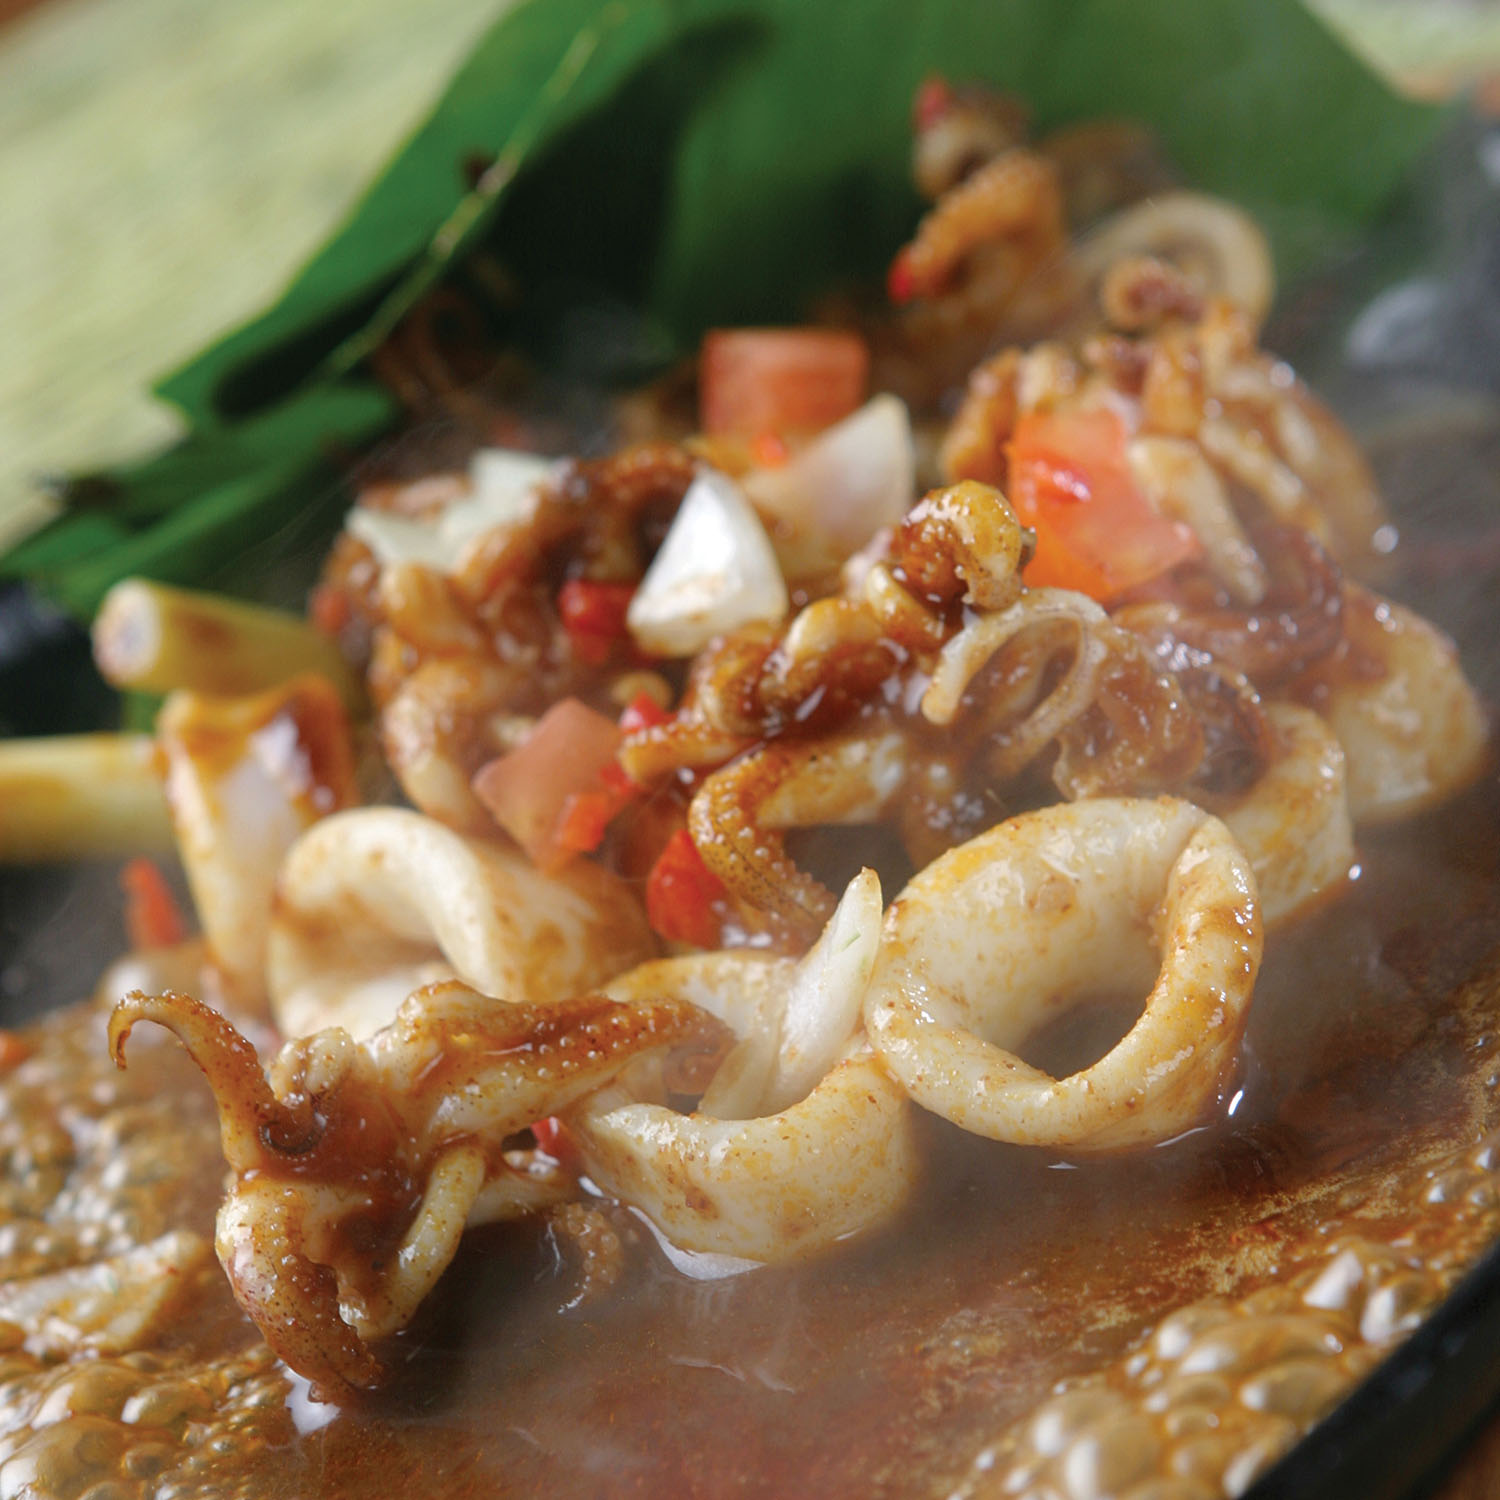 BAKED SQUID IN TOM YAM SAUCE